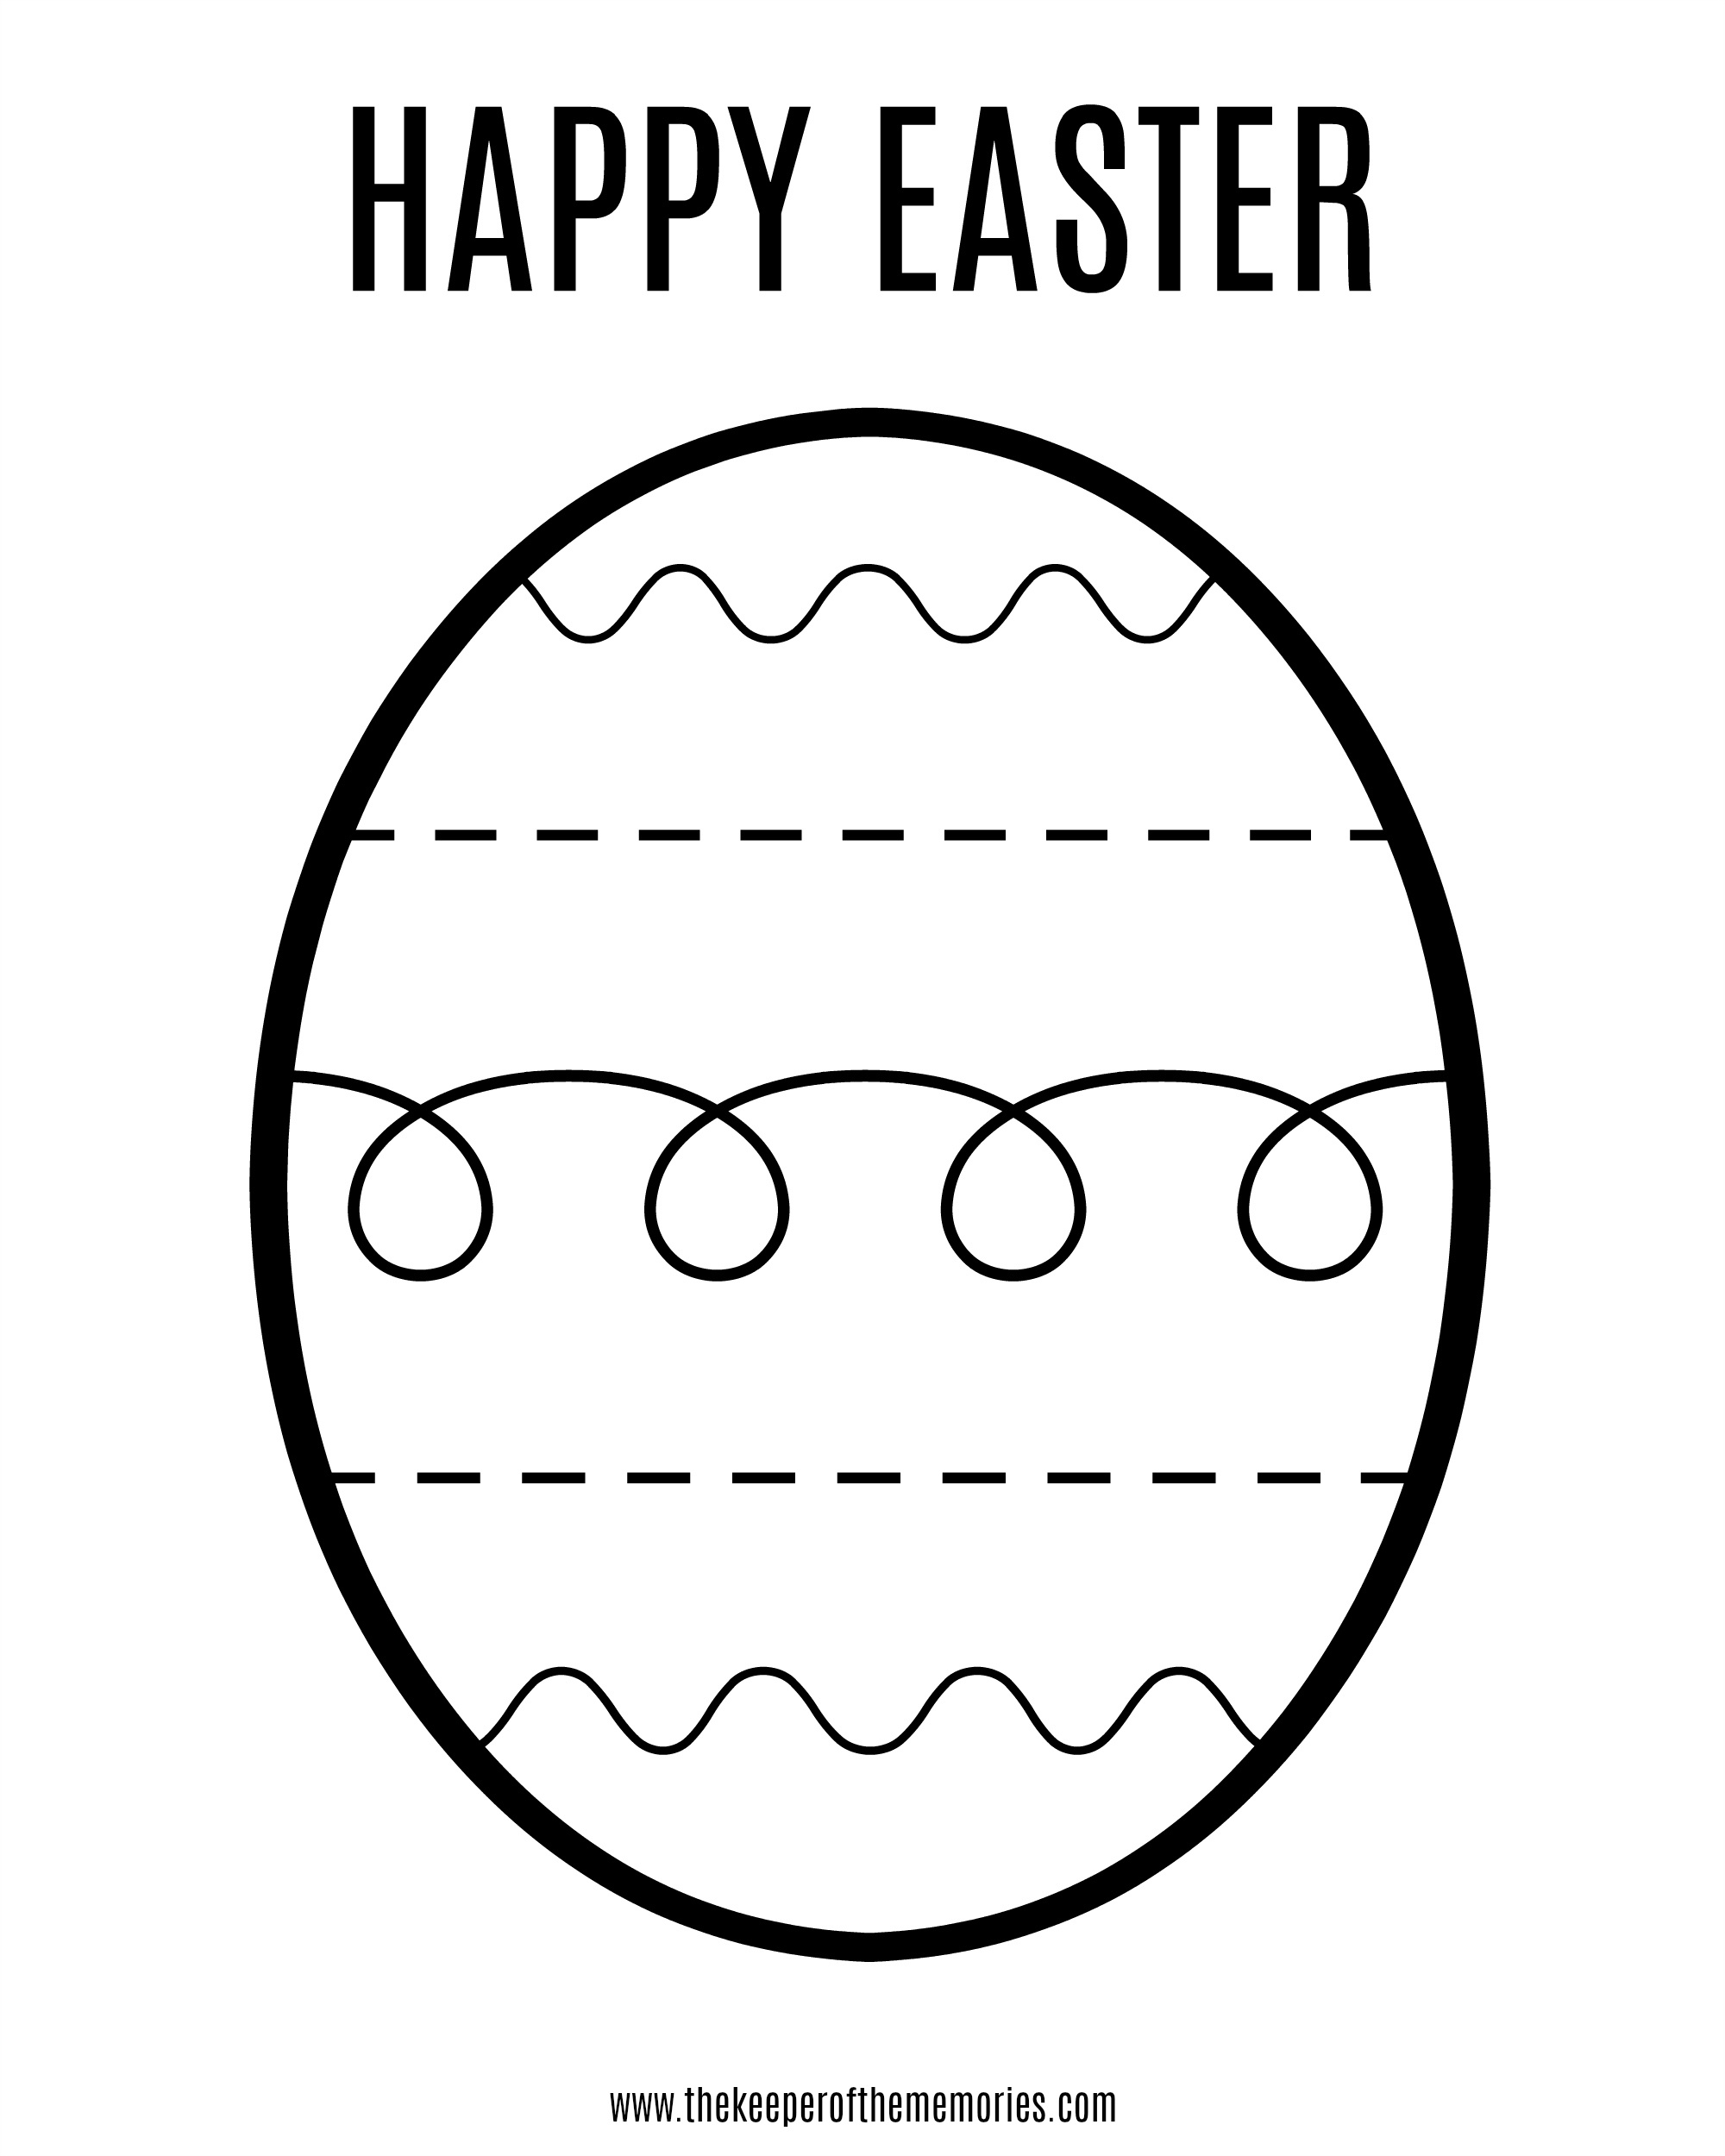 Free Printable Easter Coloring Sheet For Little Kids - The Keeper Of - Coloring Pages Free Printable Easter